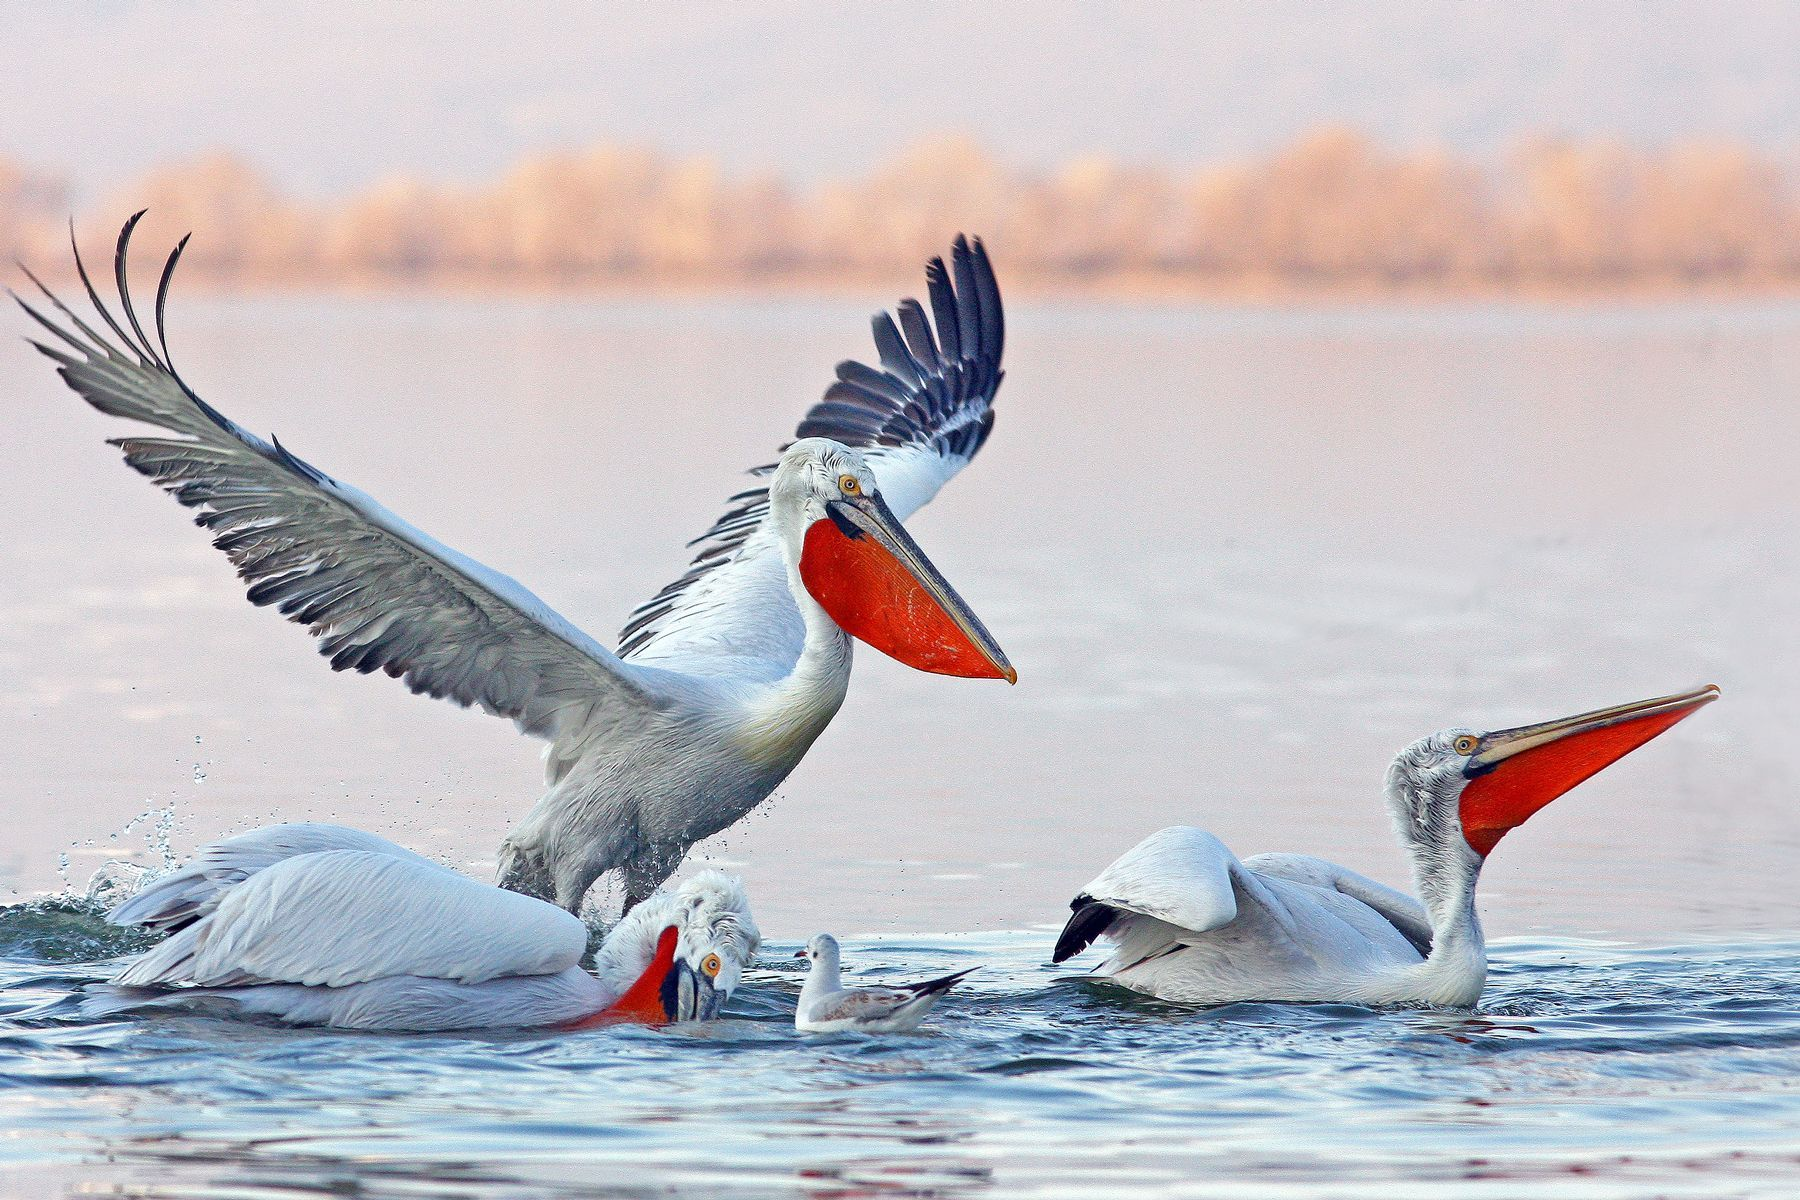 These Dalmatian Pelicans are showing the bright red bill pouches of breeding birds in the Danube Delta